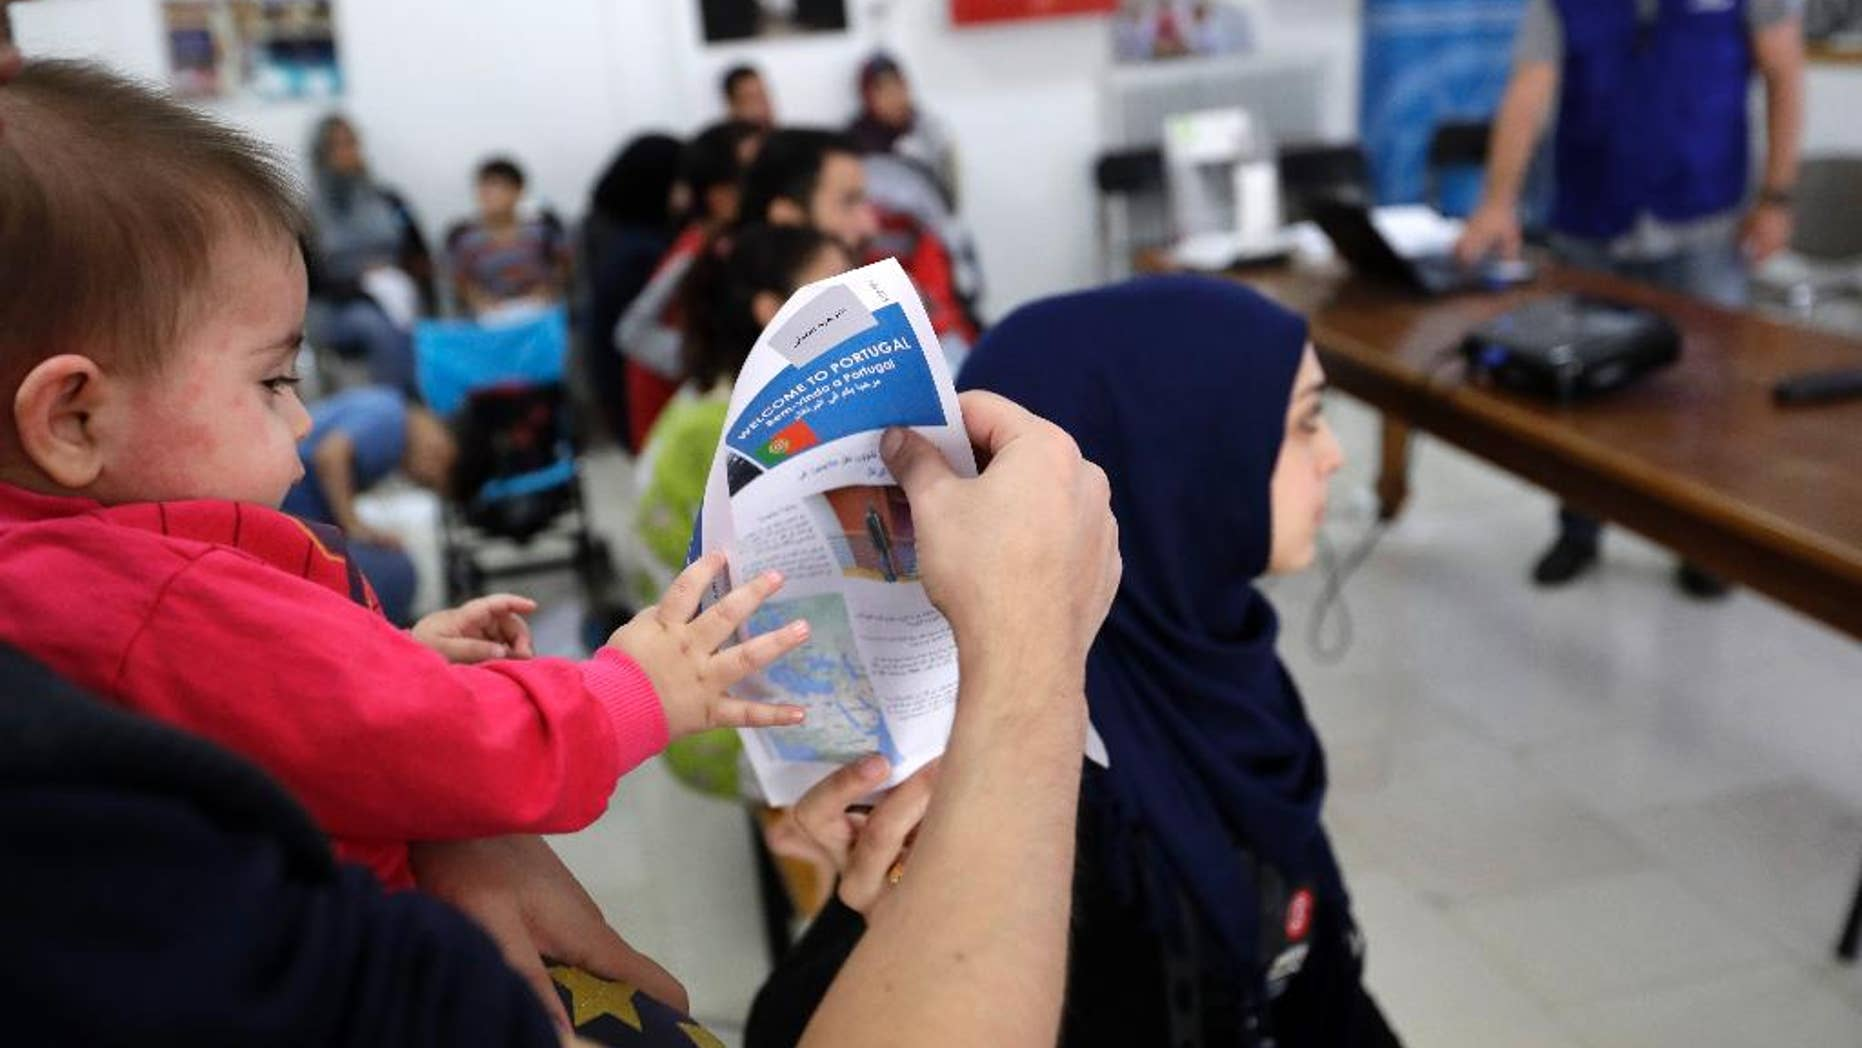 A child tries to takes a flyer from his father's hand as a group of 27 refugees takes part in an orientation program at International Organization of Migration office in Athens, Tuesday, Sept. 27, 2016, one day before being relocated to Portugal. The program should have seen 66,400 people from Greece relocated across the EU over two years from Sept. 16 last year, but to date just over 4,130 people have been resettled. (AP Photo/Thanassis Stavrakis)